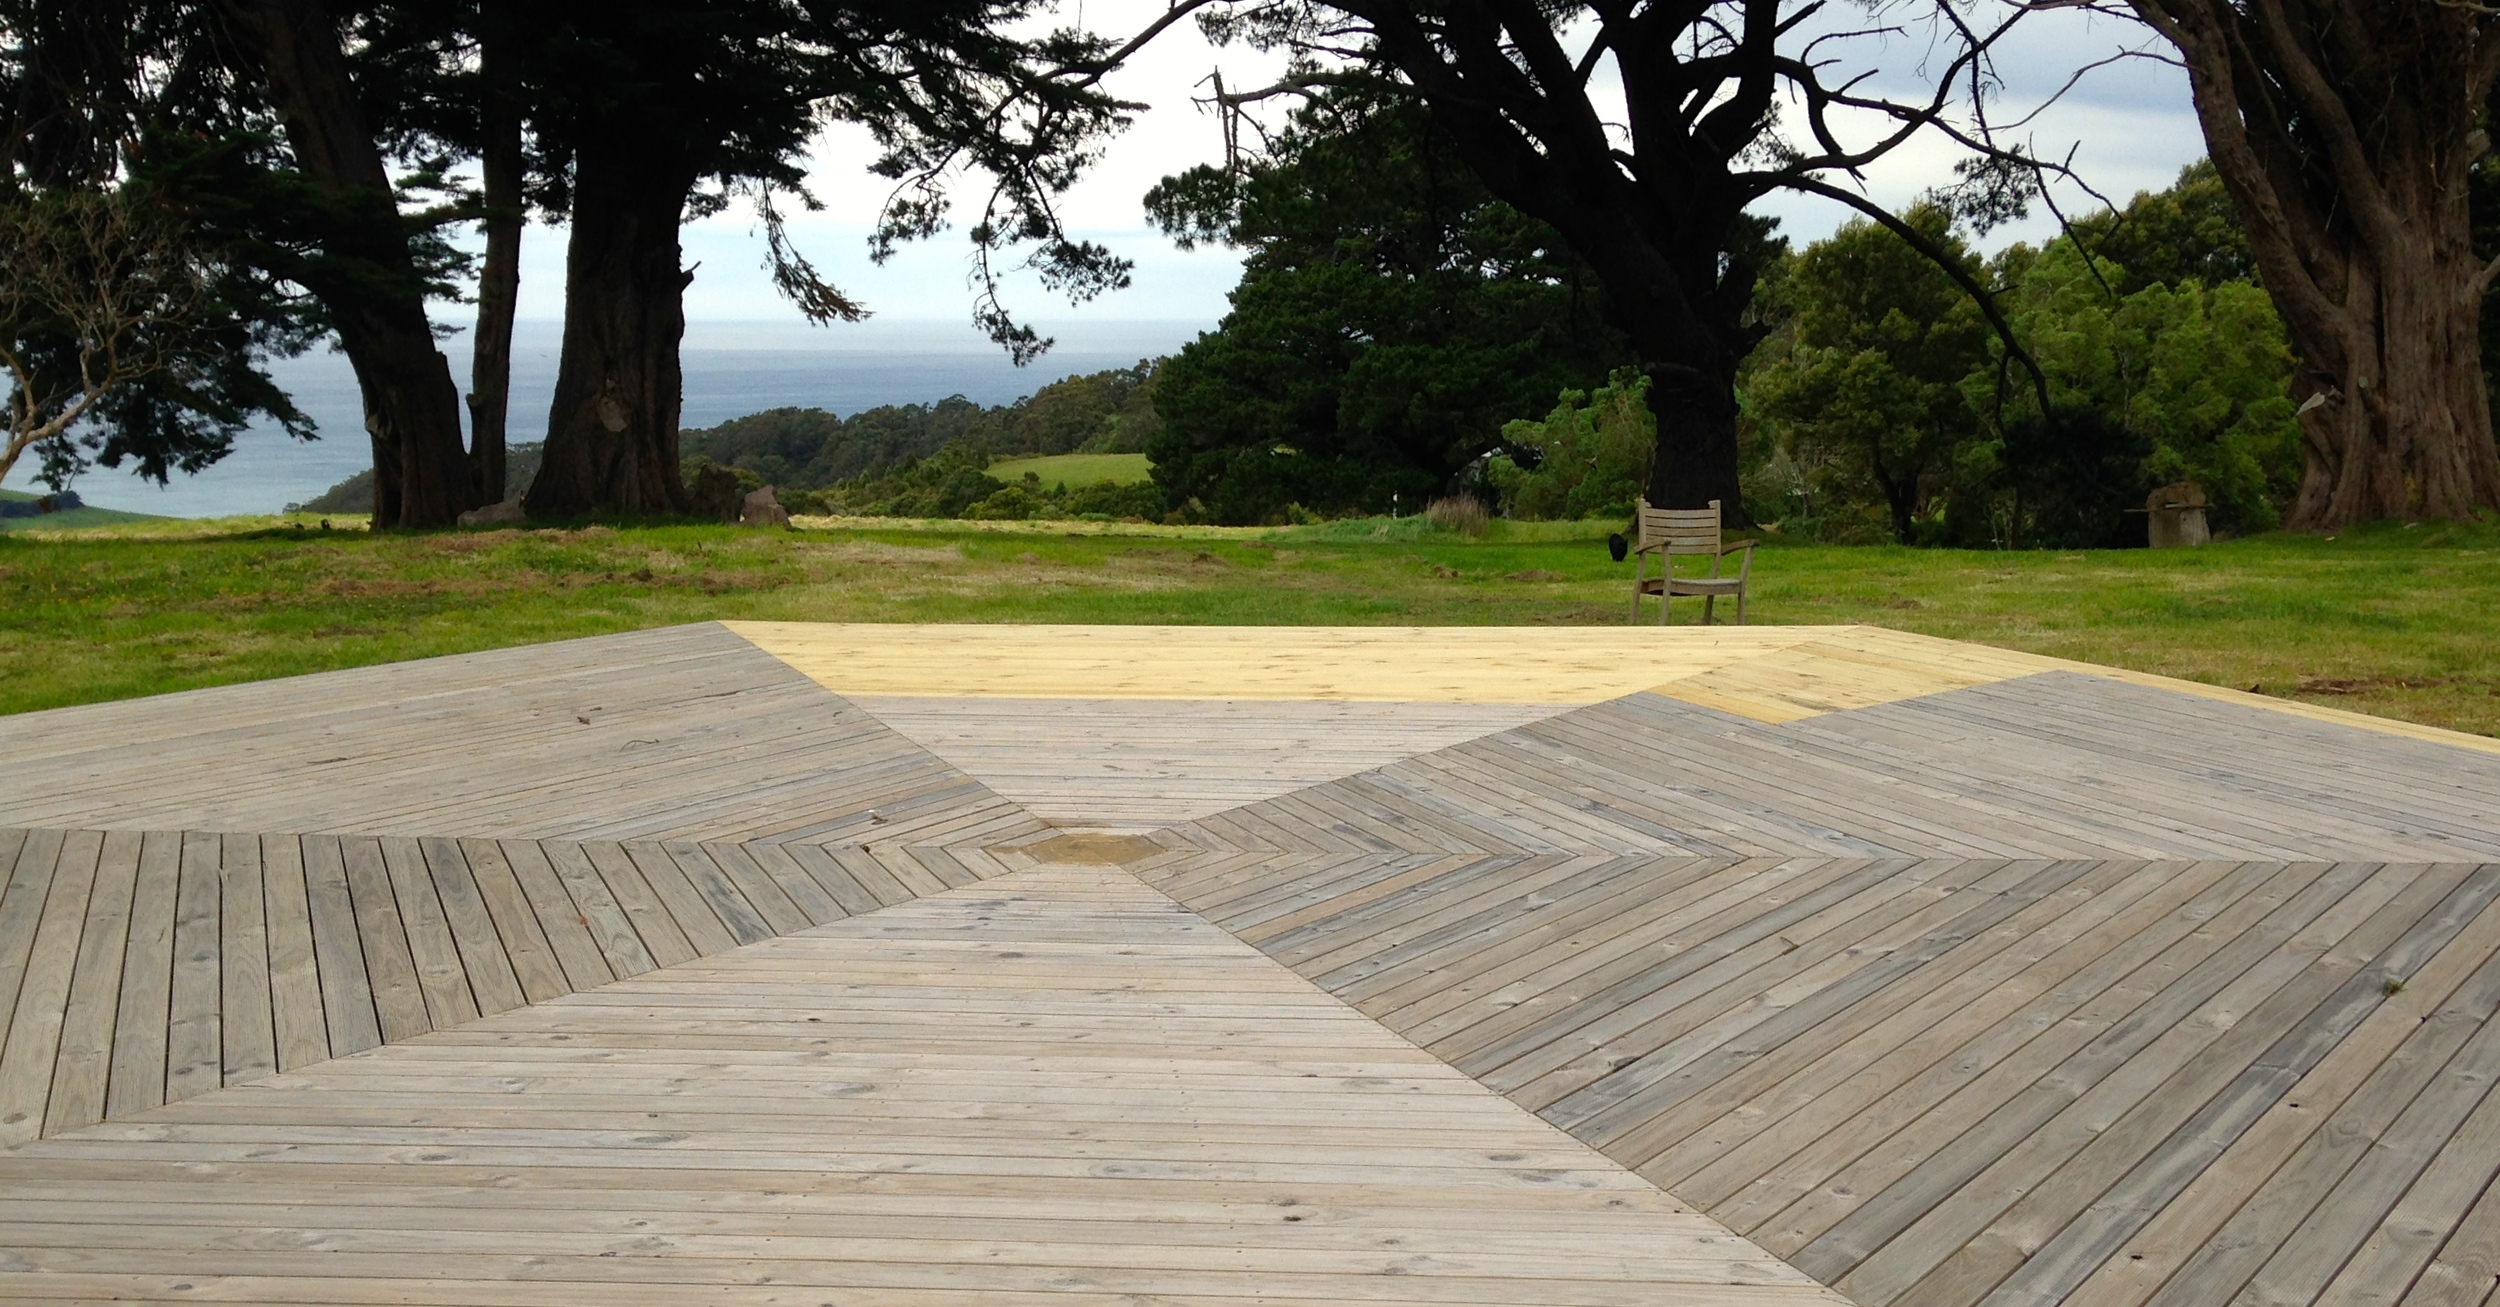 The Yoga Deck at Crow's Nest